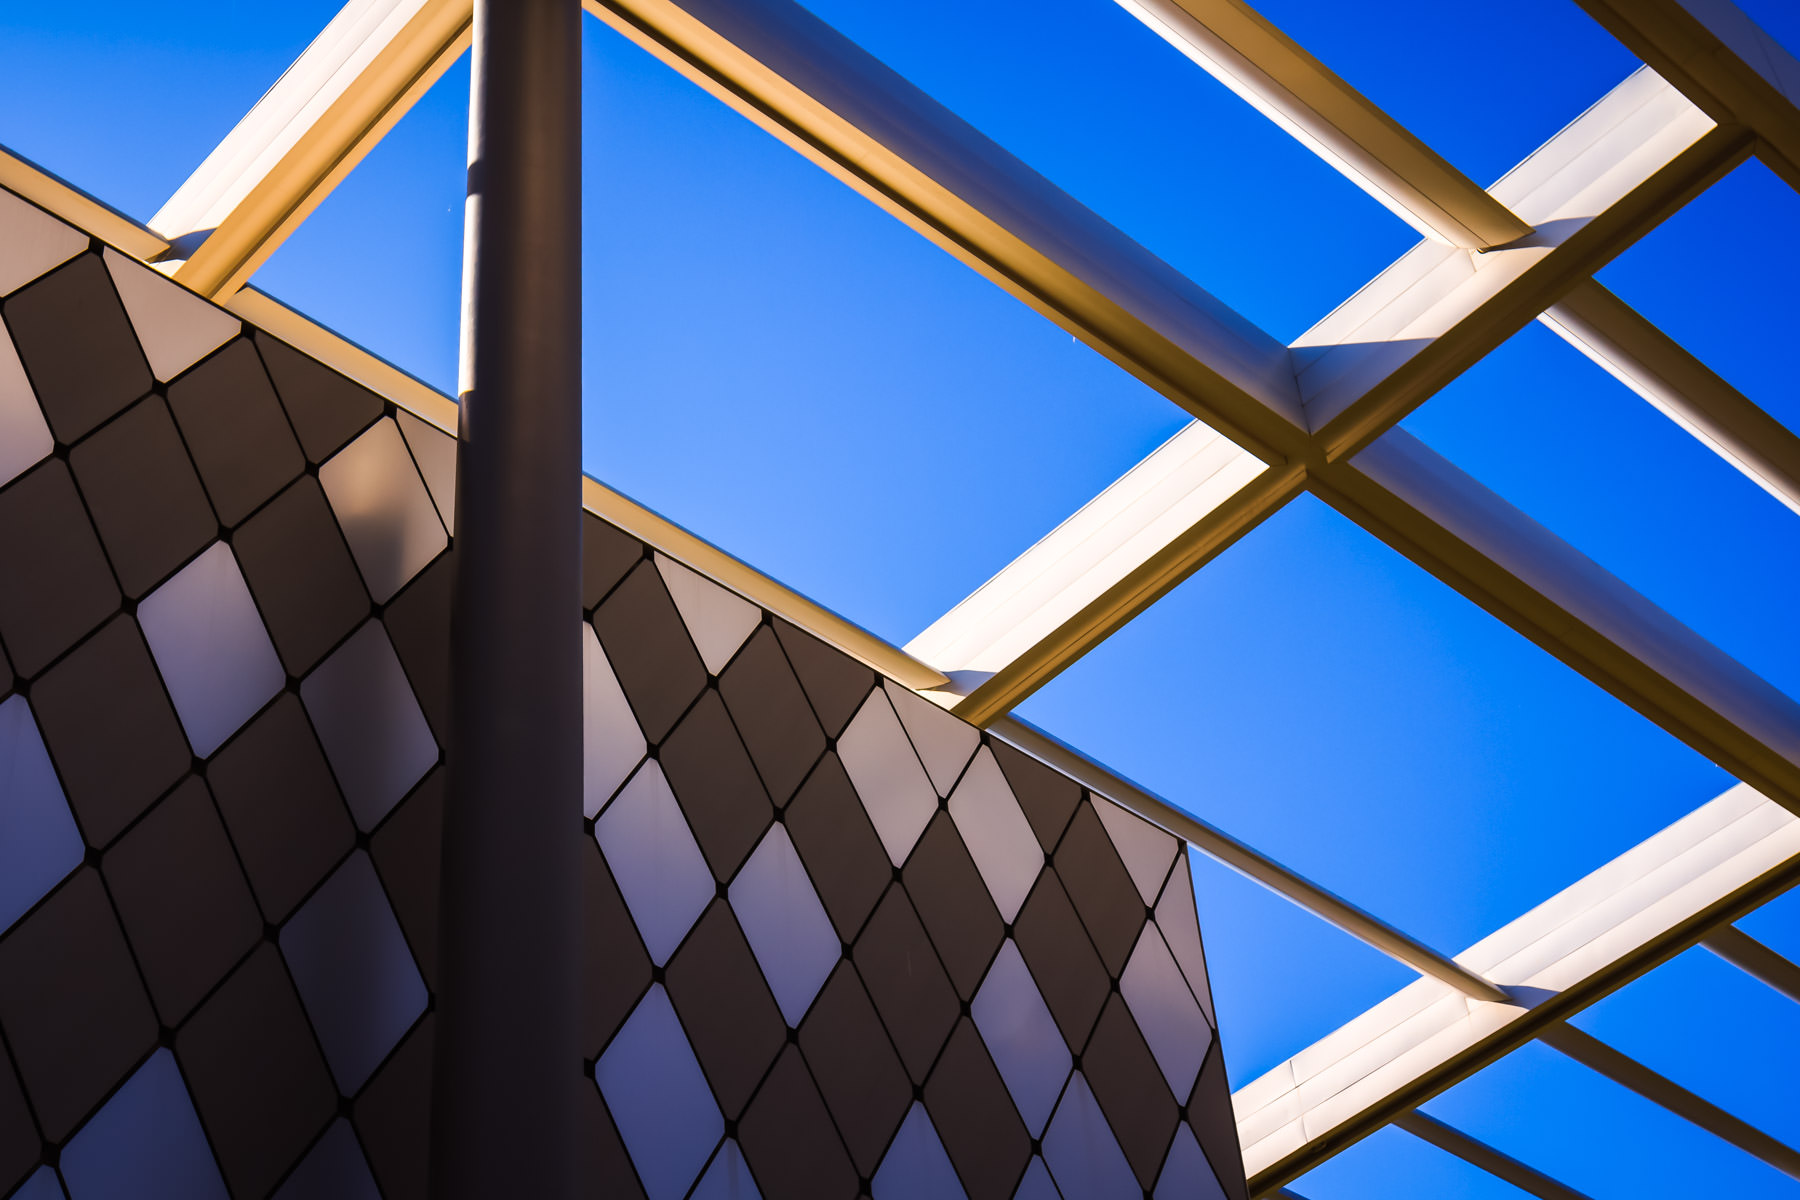 Detail of the exterior of the Winspear Opera House, Dallas, Texas.